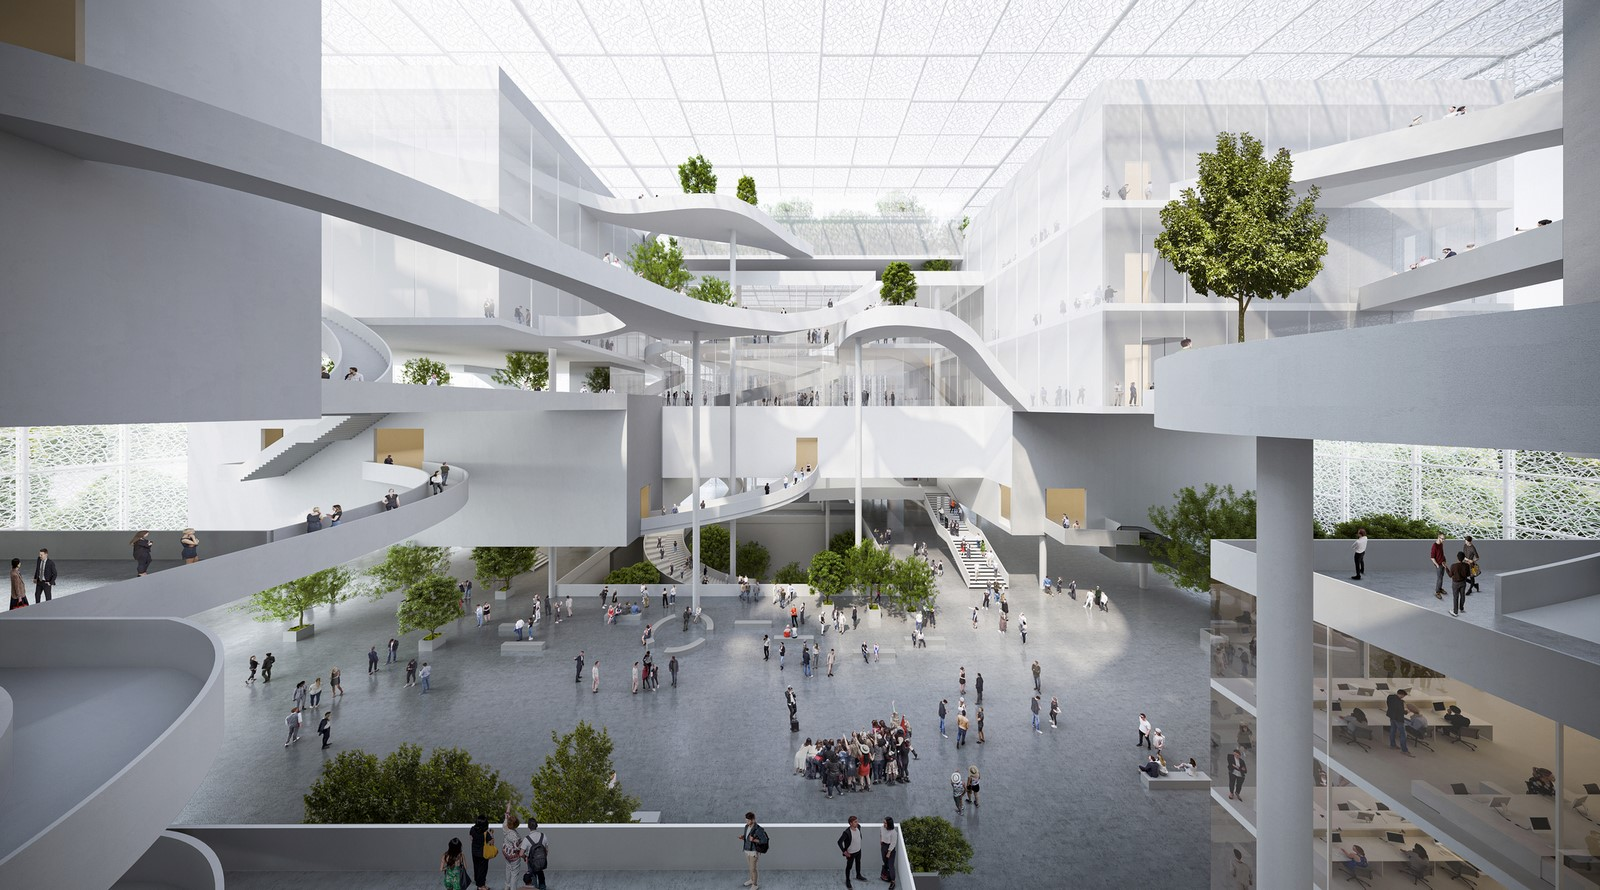 Shenzhen exhibition complex with transparent facade designed by Sou Fujimoto - Sheet3